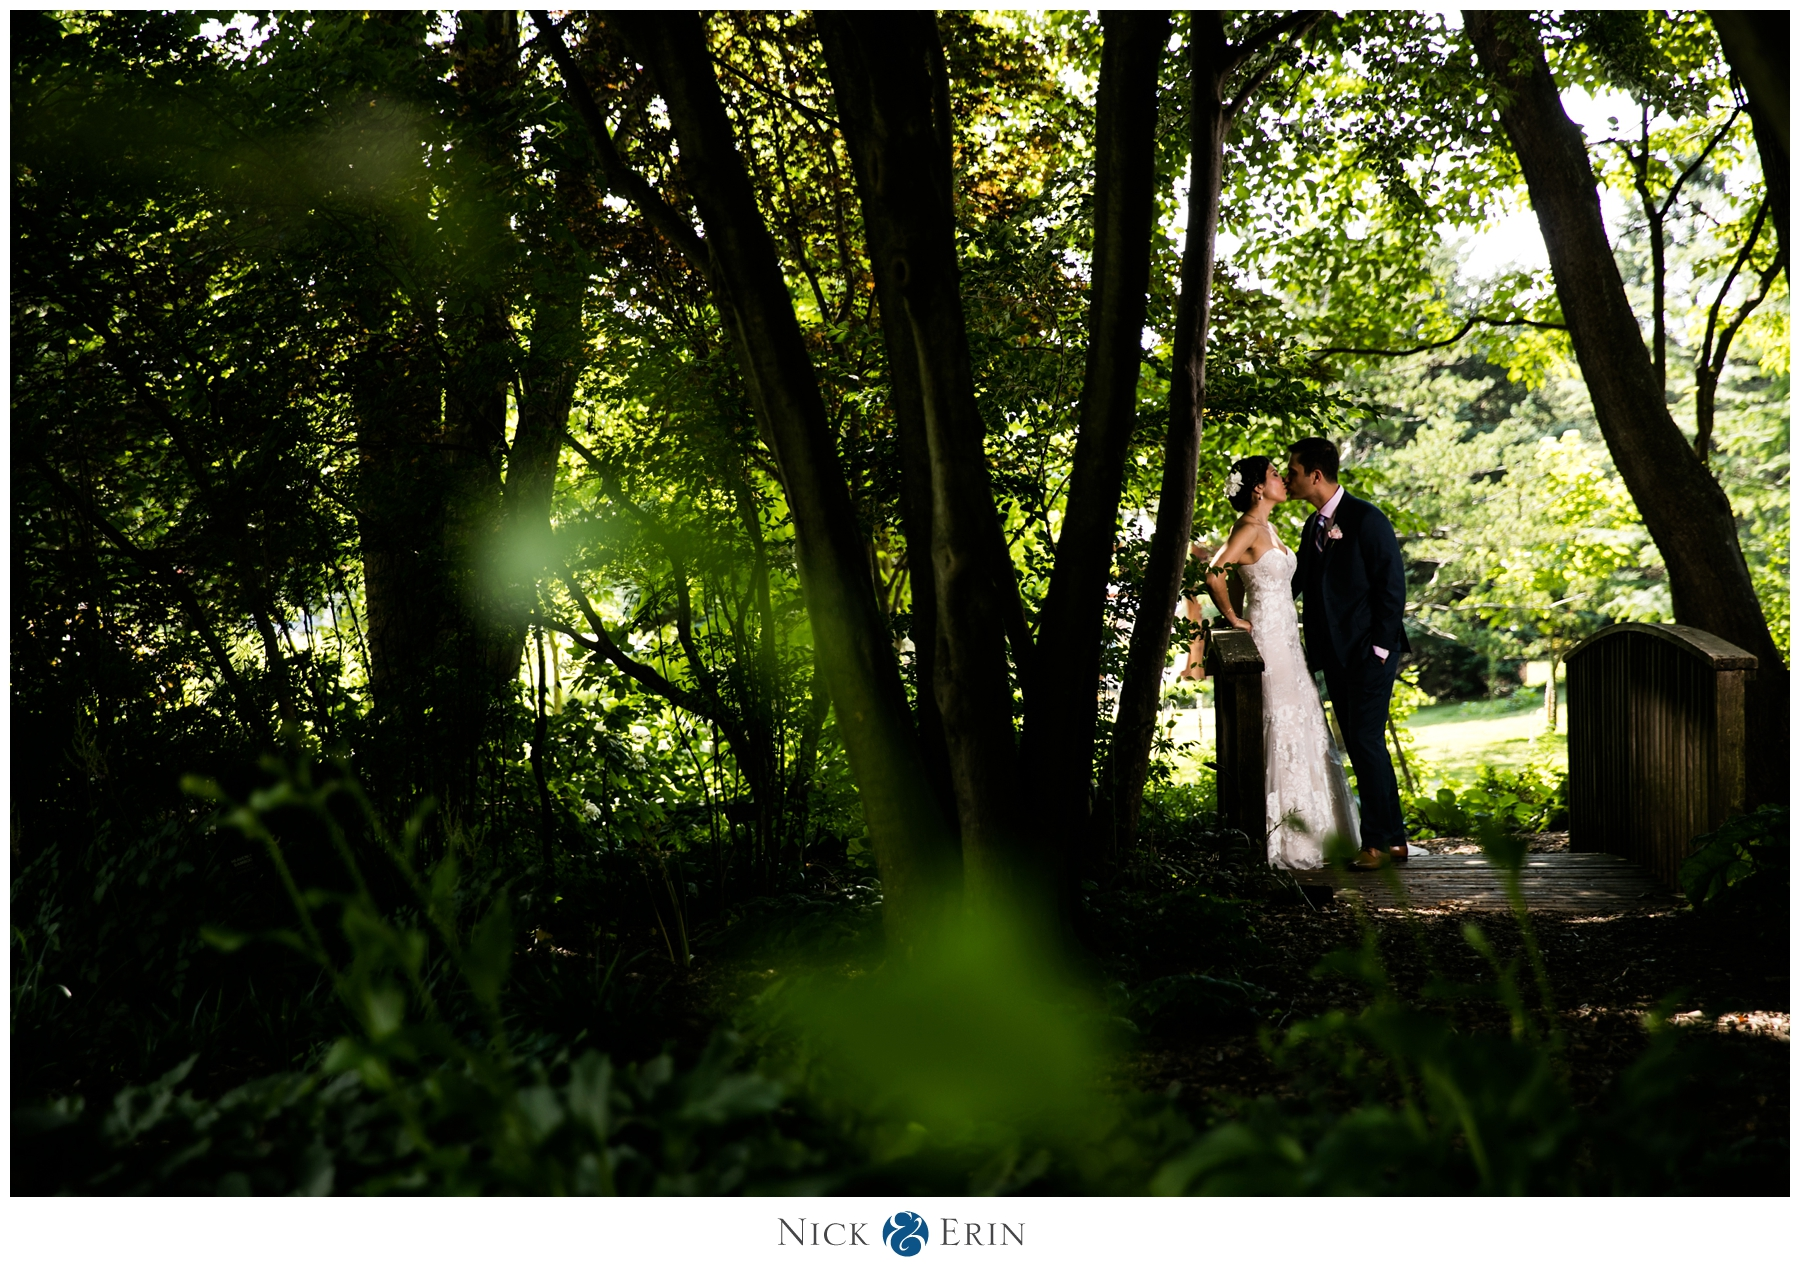 Donner_Photography_Vienna Virginia Wedding_Azadeh & Nima_0021